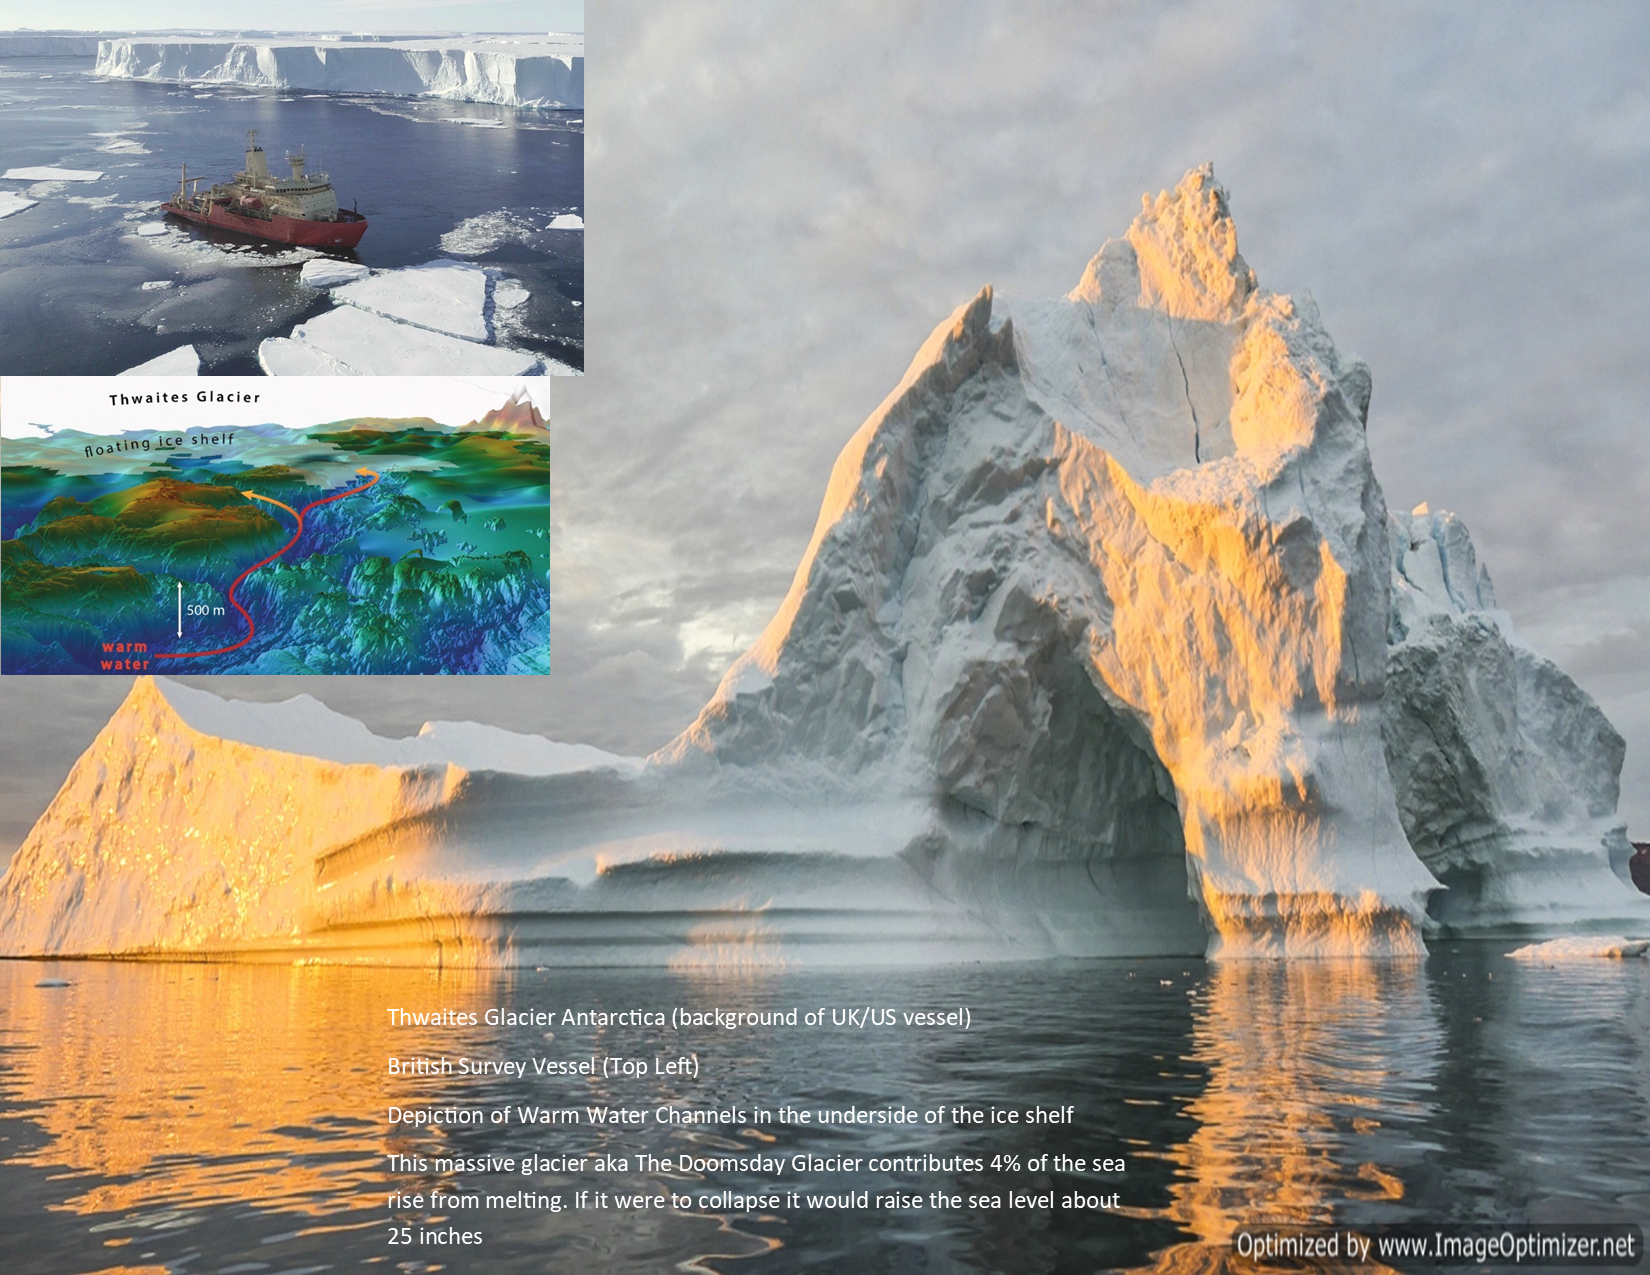 Twaite Glacier in Antartica. UK/US survey vessel in the foreground of the glacier. Images: Main image licensed to Craig Marti